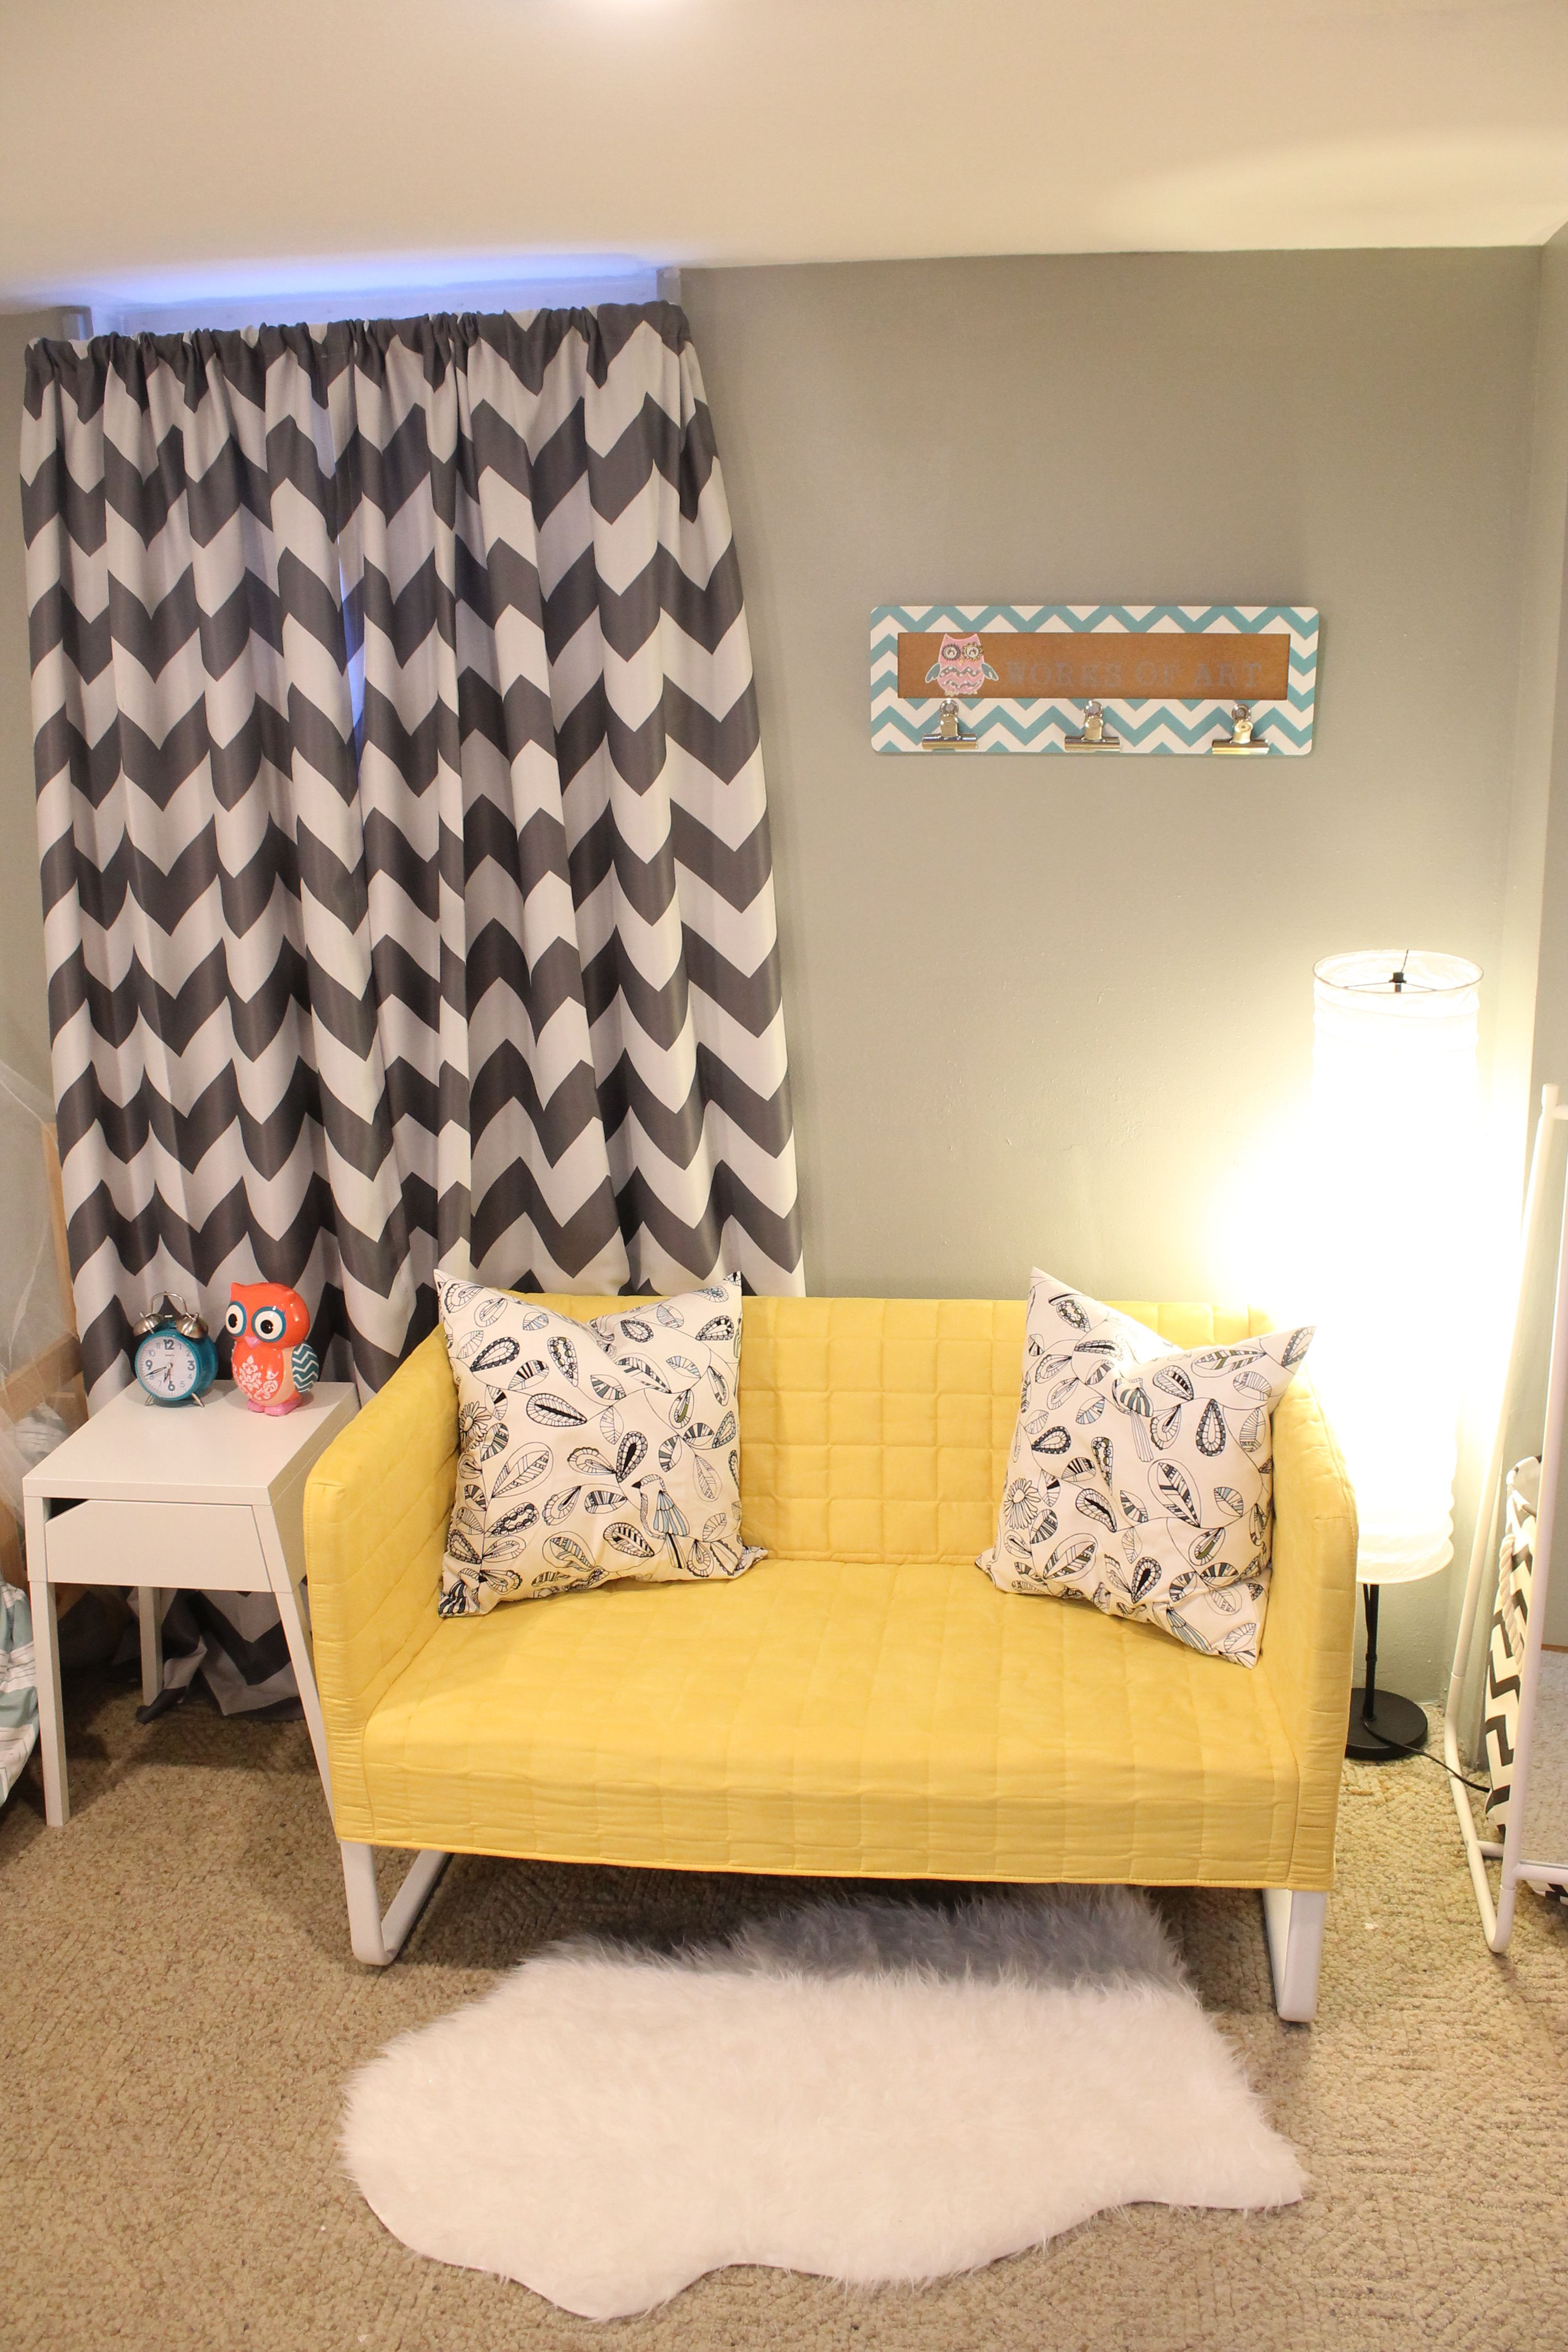 10 year old girl\'s room - yellow couch, rug, nightstand, and pillows ...